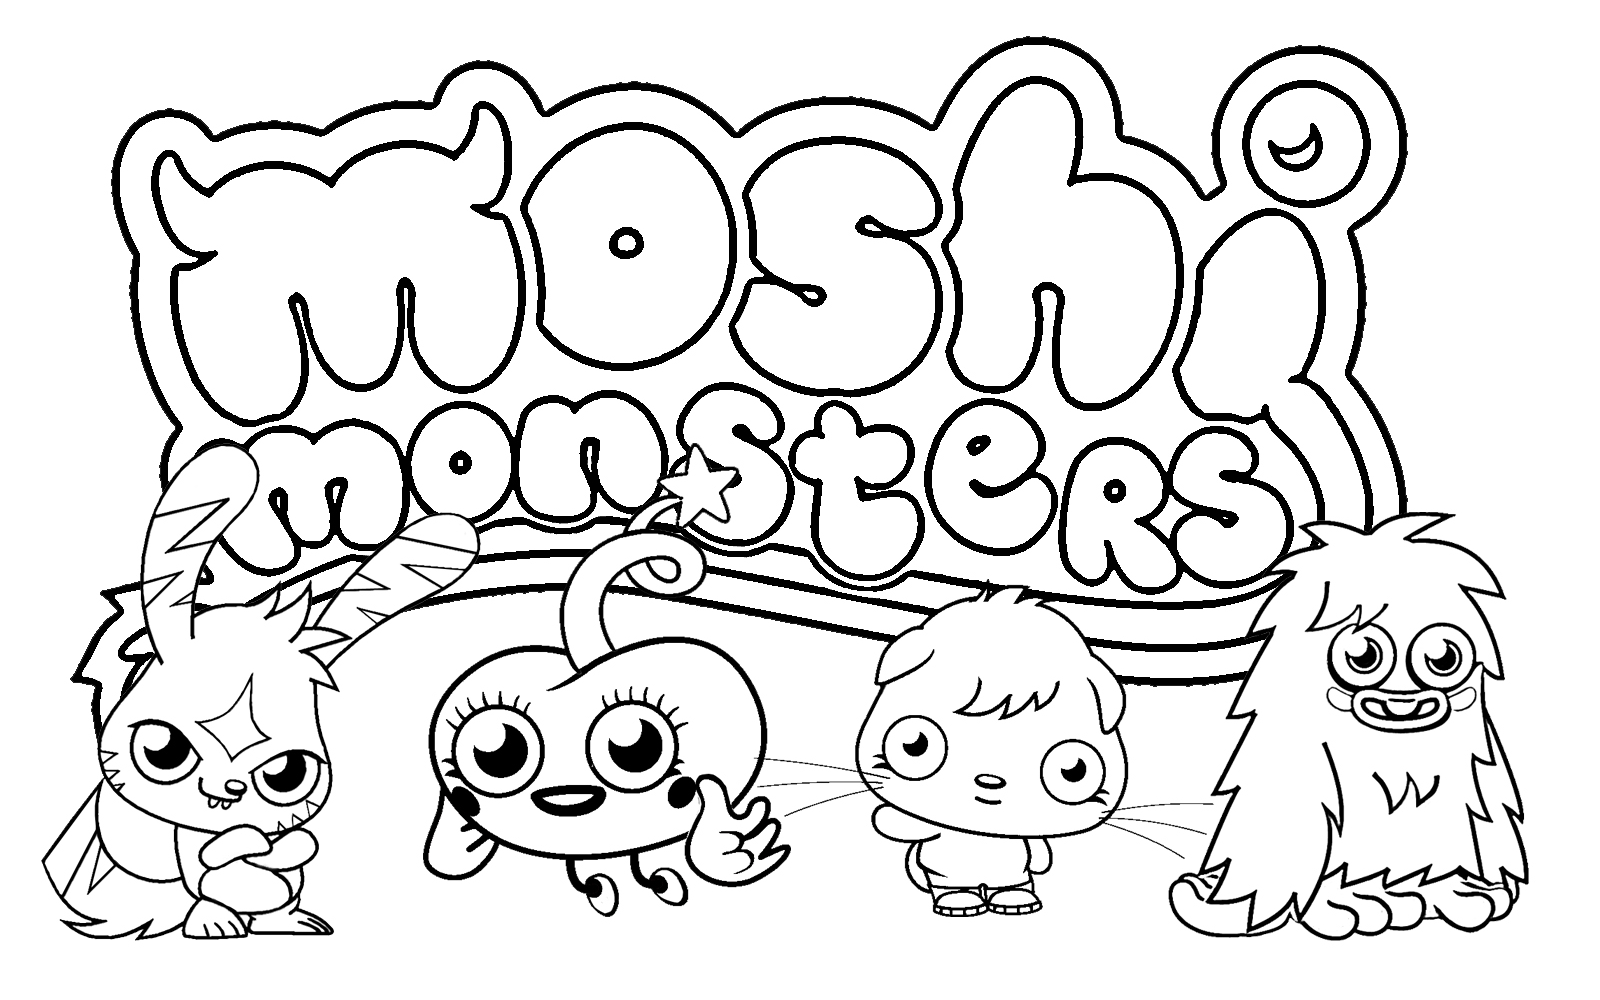 moshi monsters coloring pages - Monster Pictures For Kids To Print